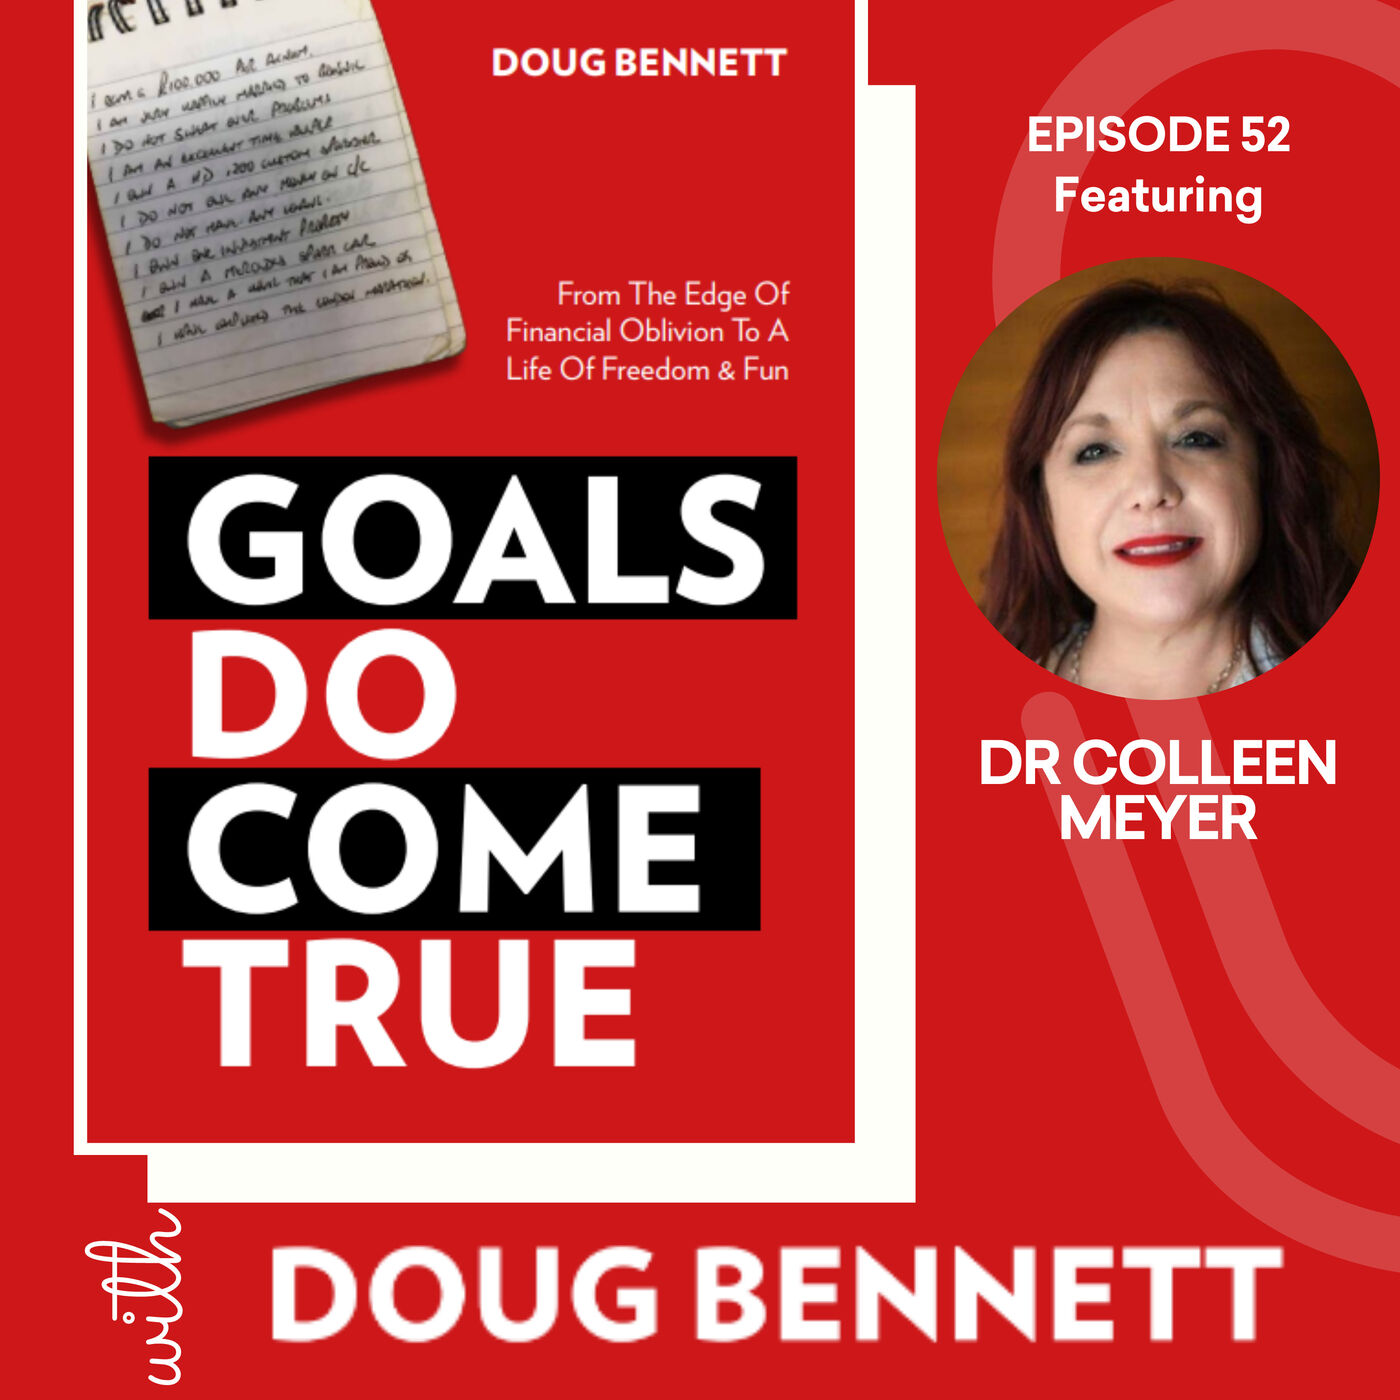 EP 52: What Are The Steps Needed To Help Achieve Your Goals With Dr Colleen Meyer